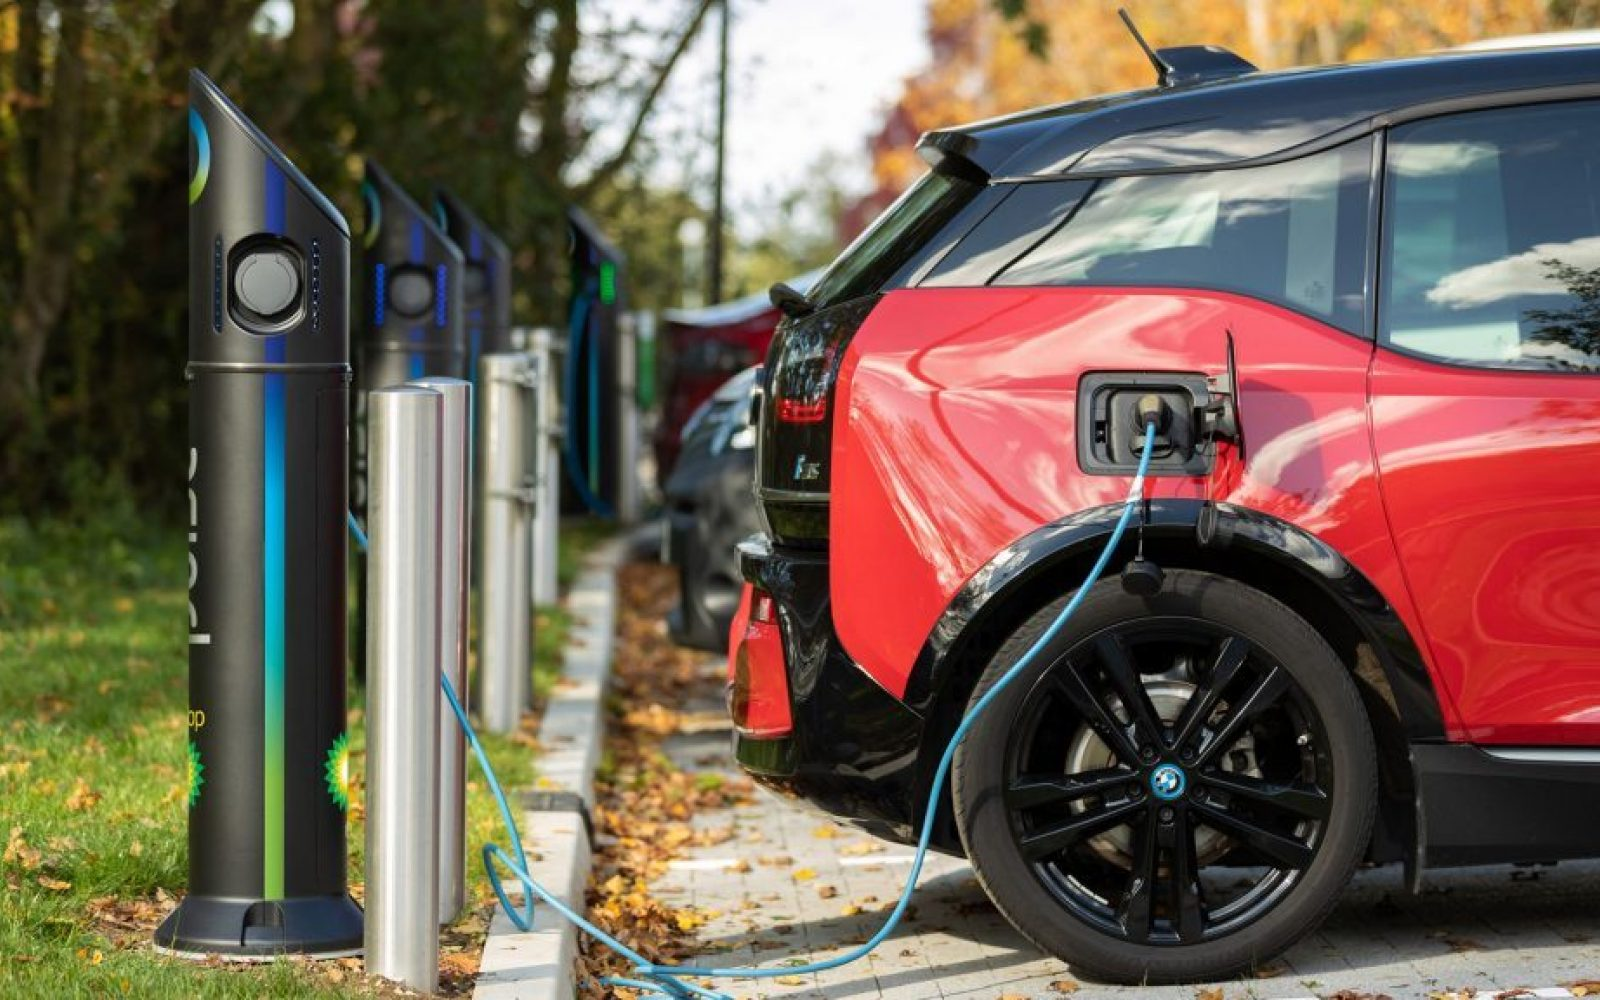 CESL Signs Agreement With HPCL For Setting Up of EV Charging Points in Metro Cities Across India